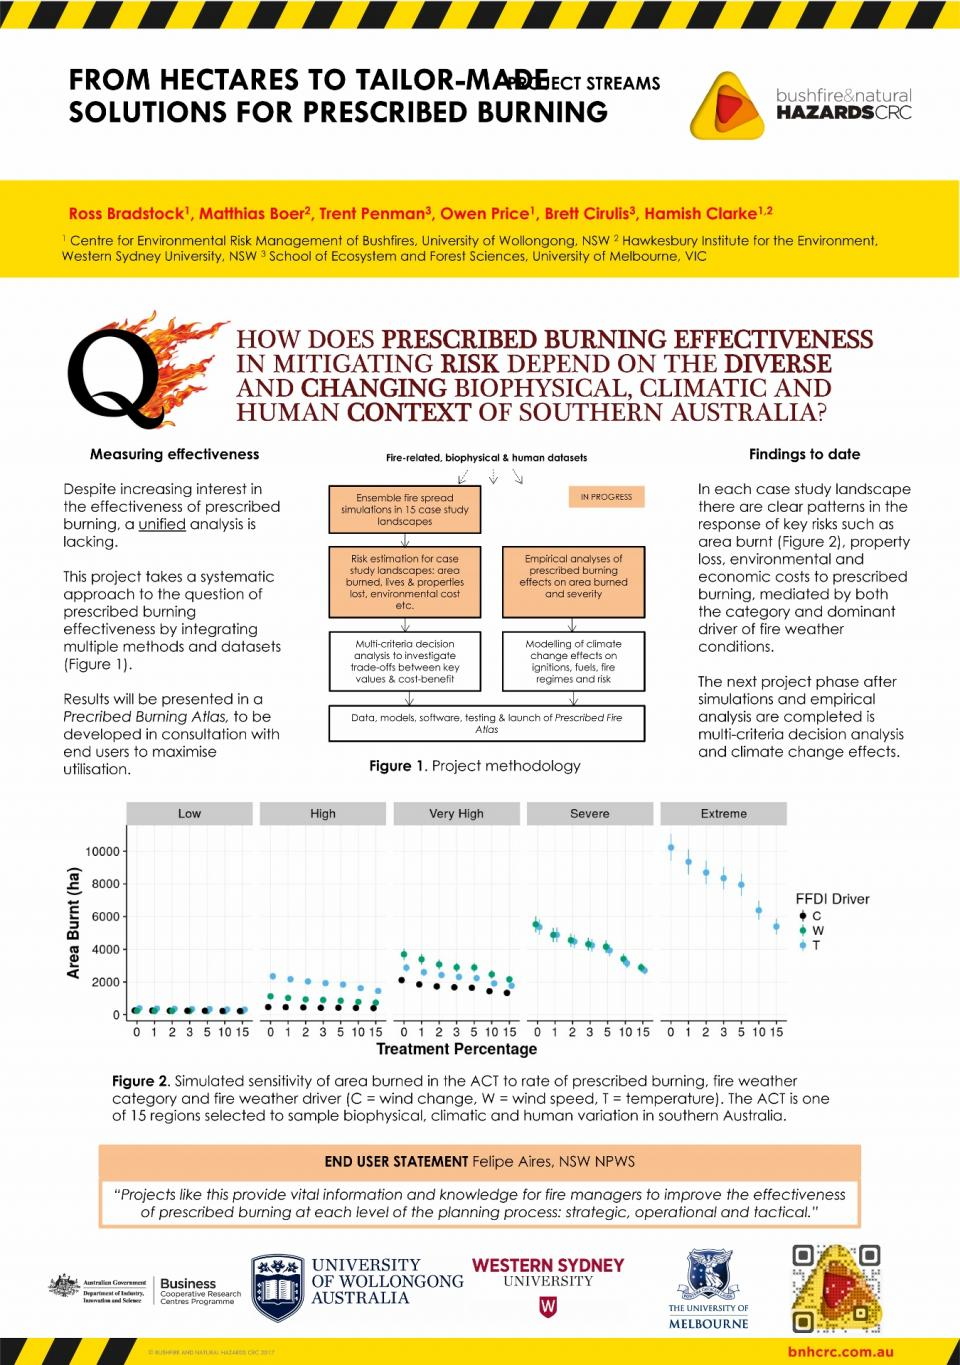 From hectares to tailor-made solutions for prescribed burning